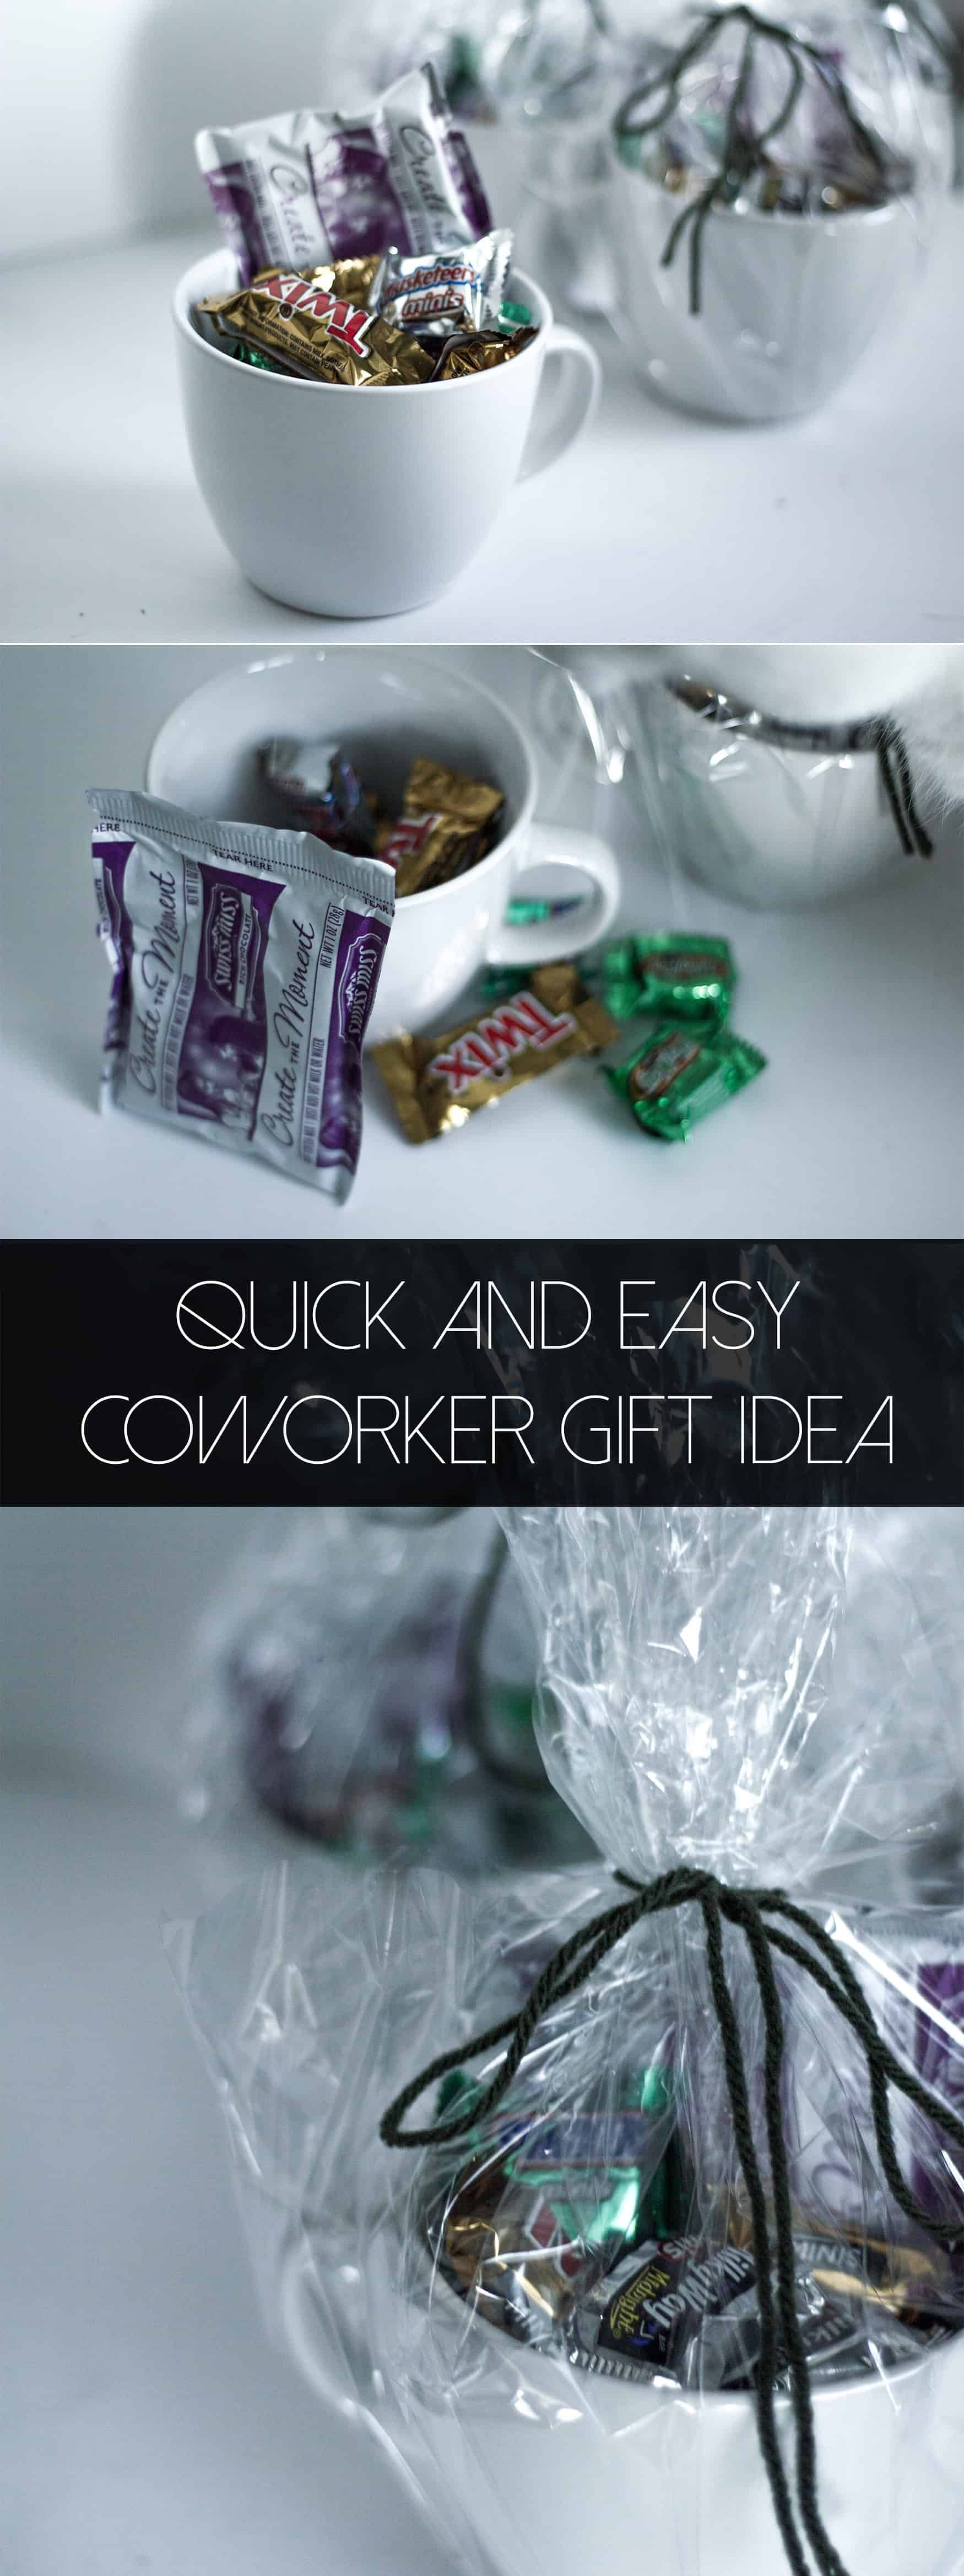 Quick Coworker Gift Idea (for Less than $4) - Practical and Pretty